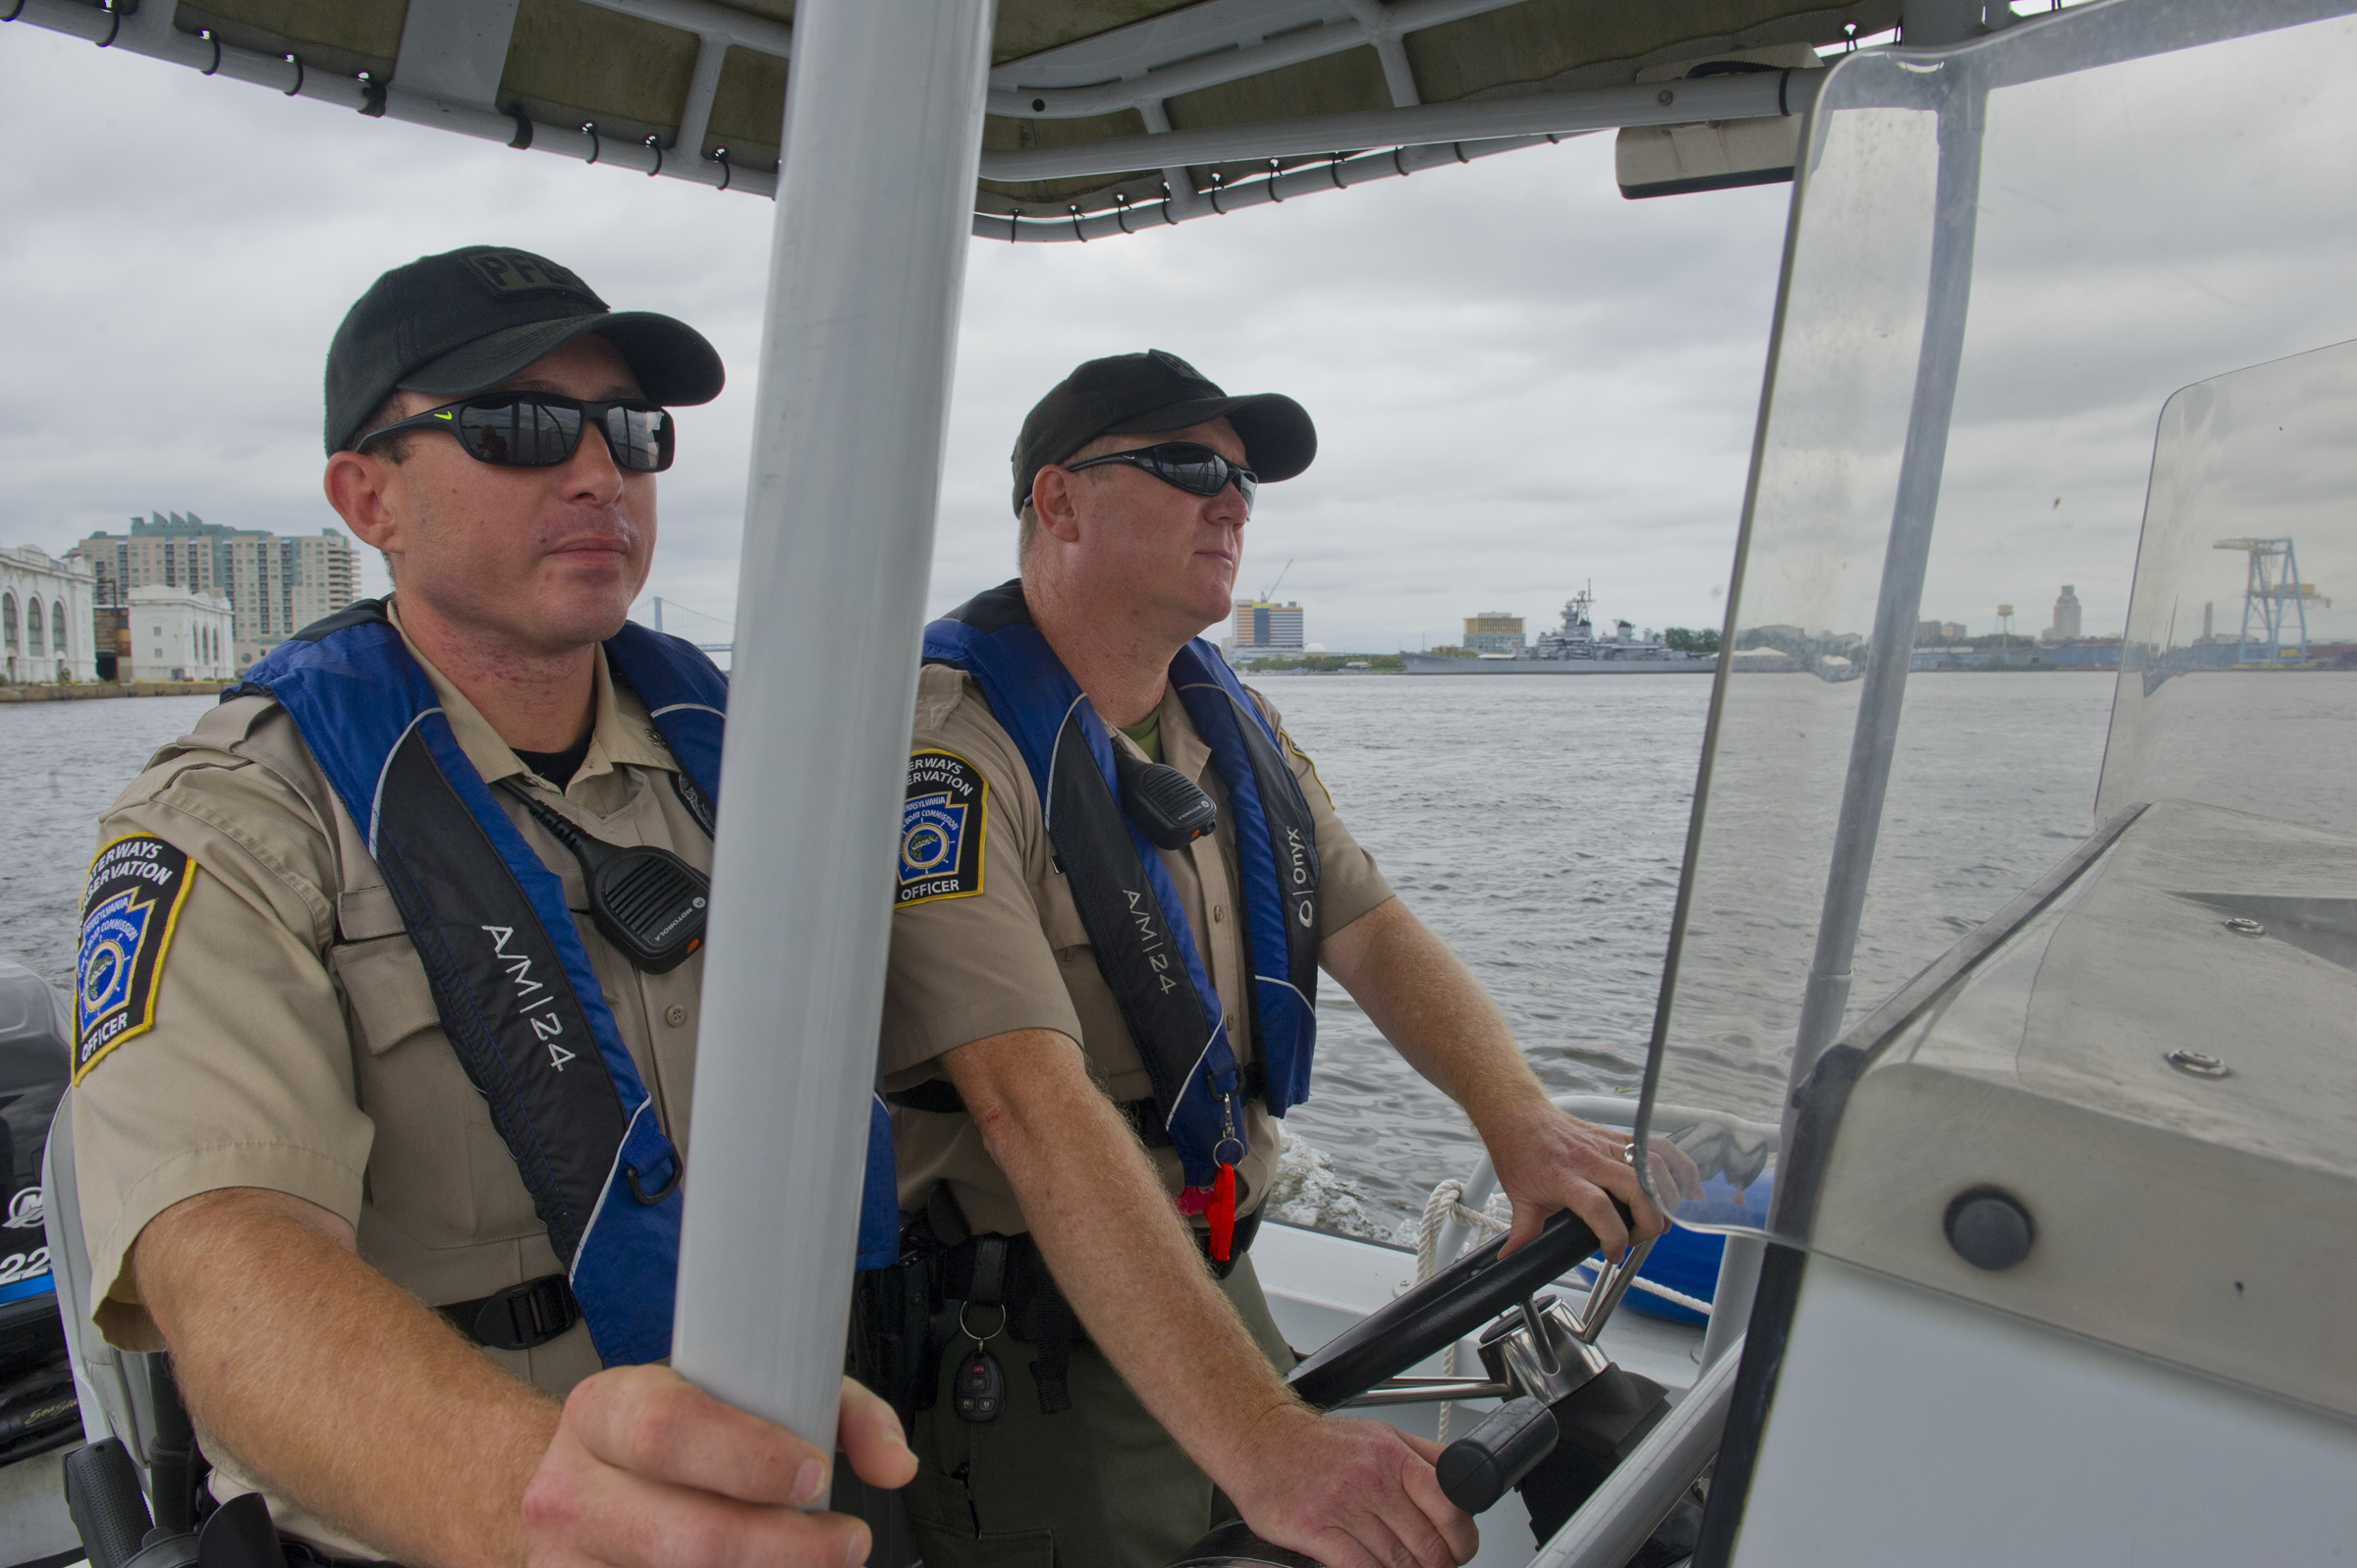 PA. Fish and Boat Commission Waterway Conservation Officers Michael Blair (left) and Nathan Hancock on the Delaware River.